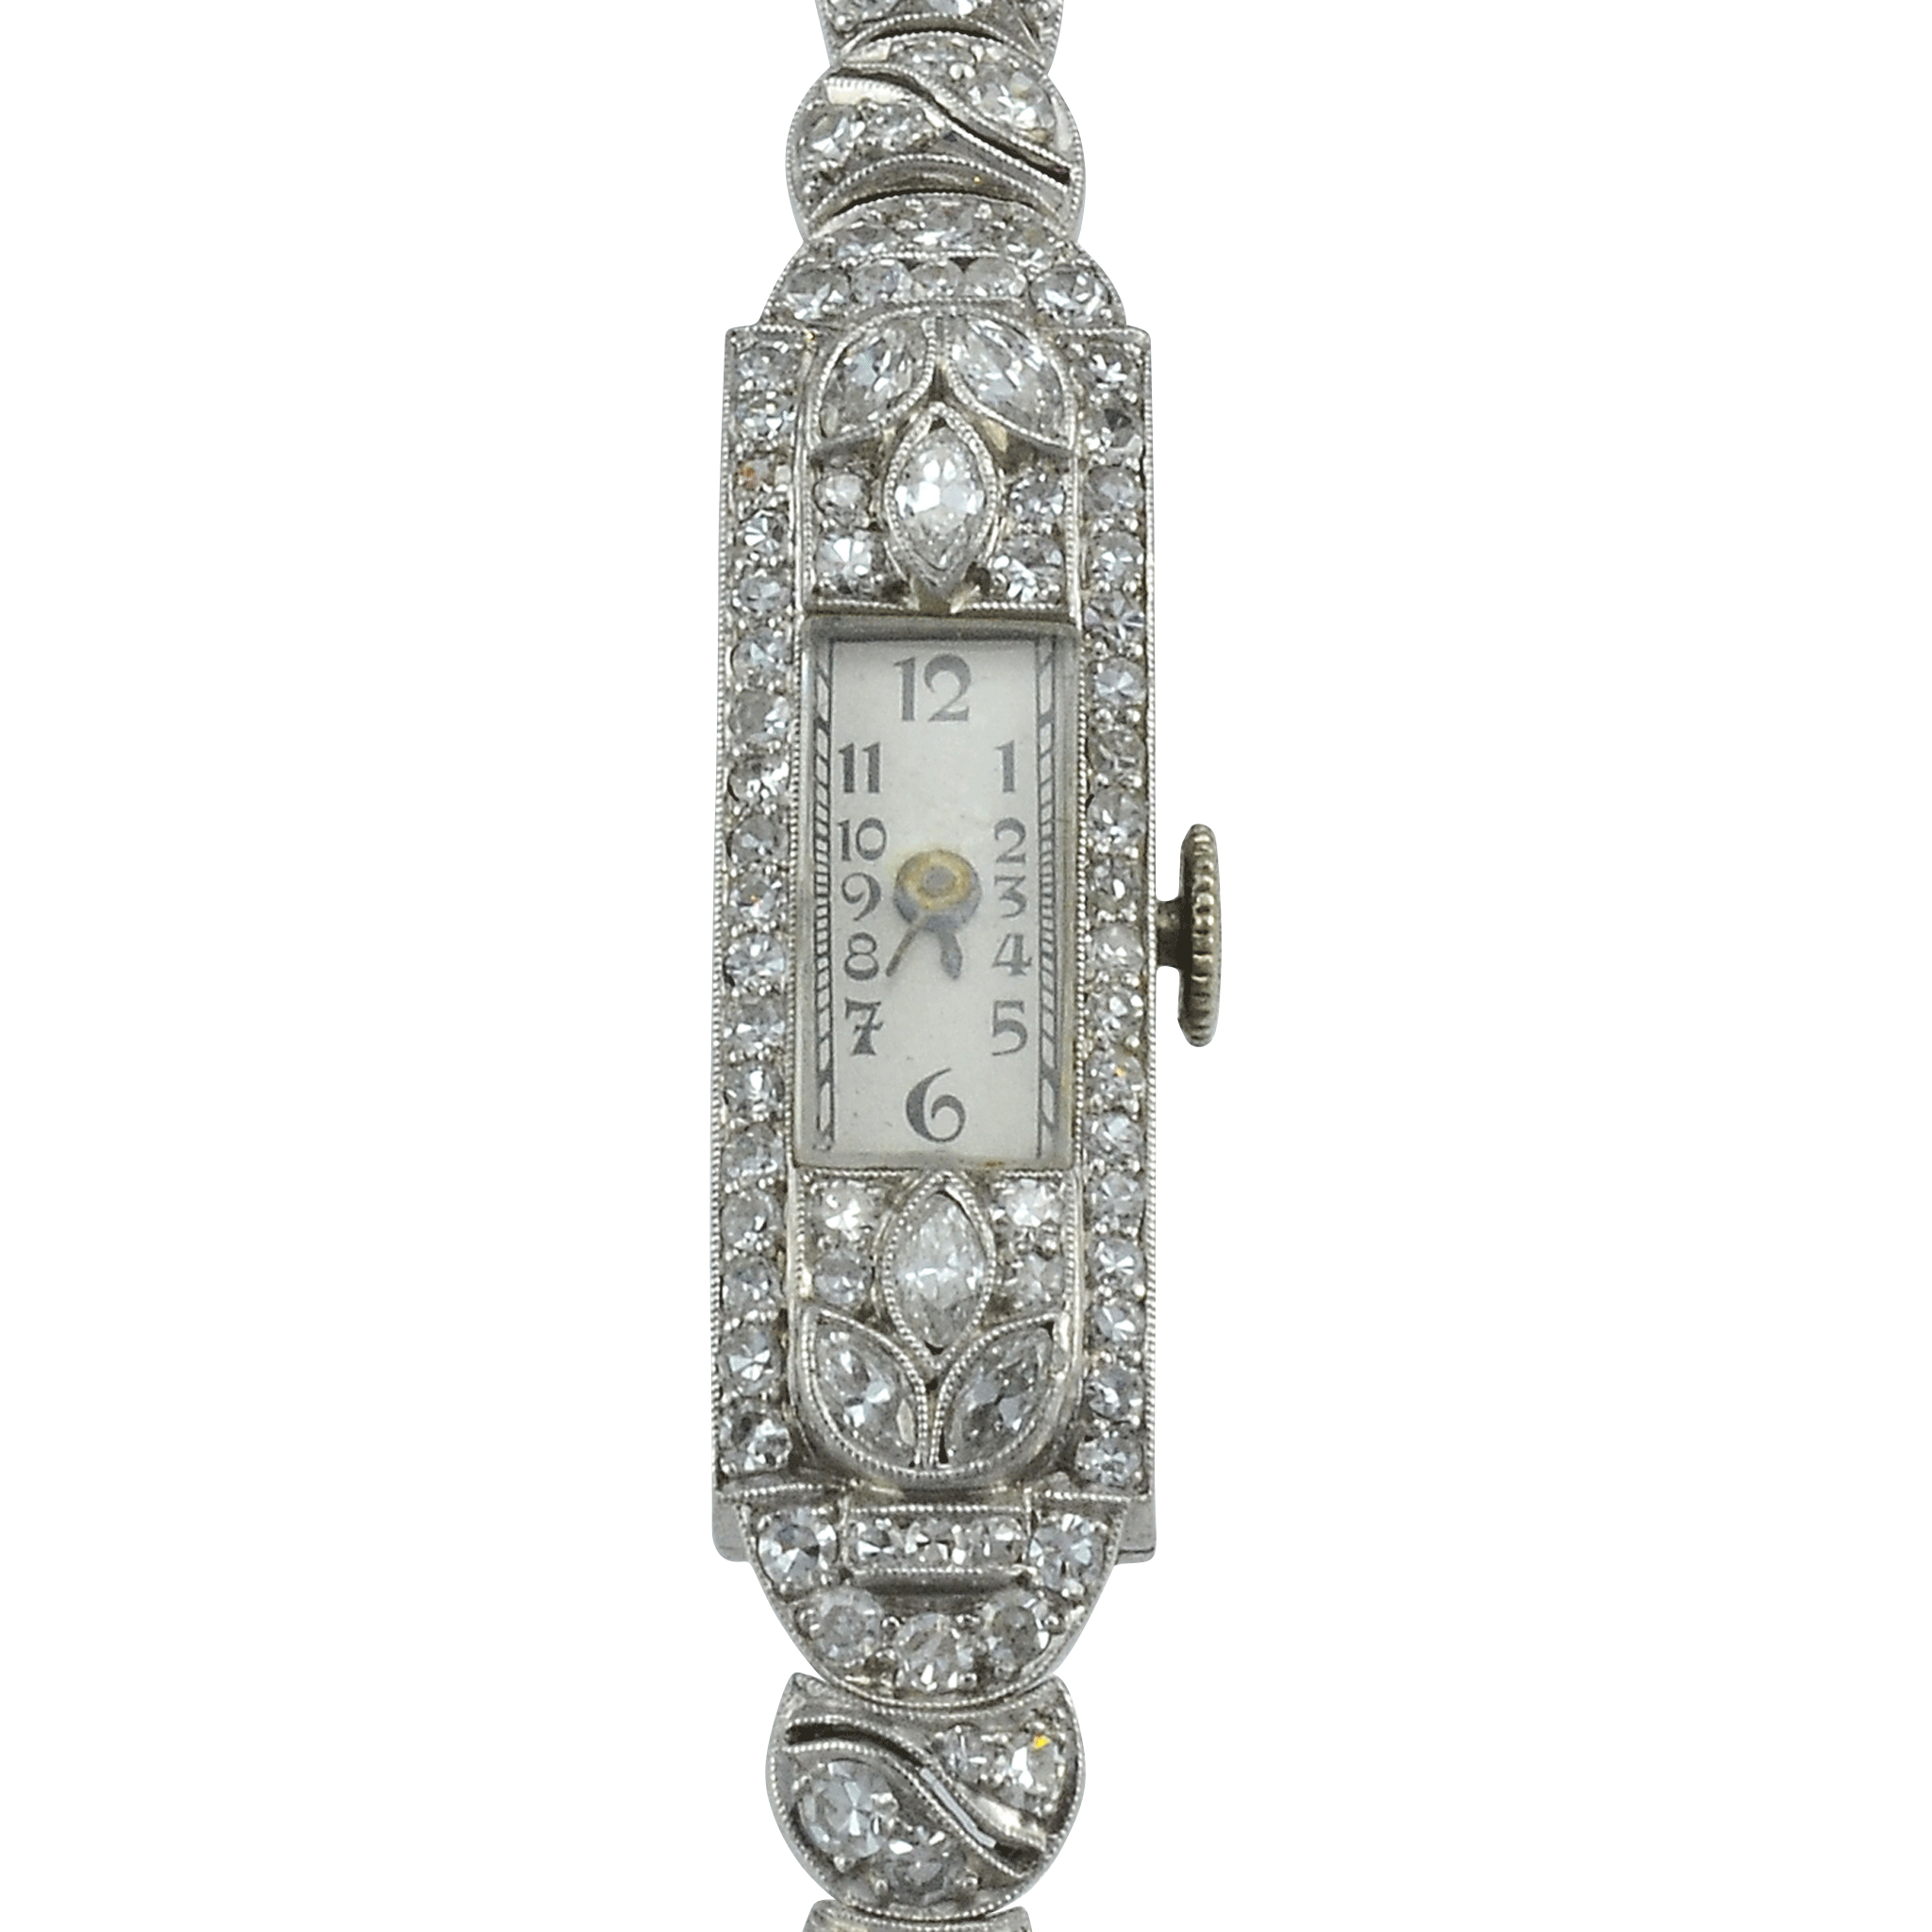 Swiss Art Deco Ladies Platinum Diamond Glycine Wrist Watch